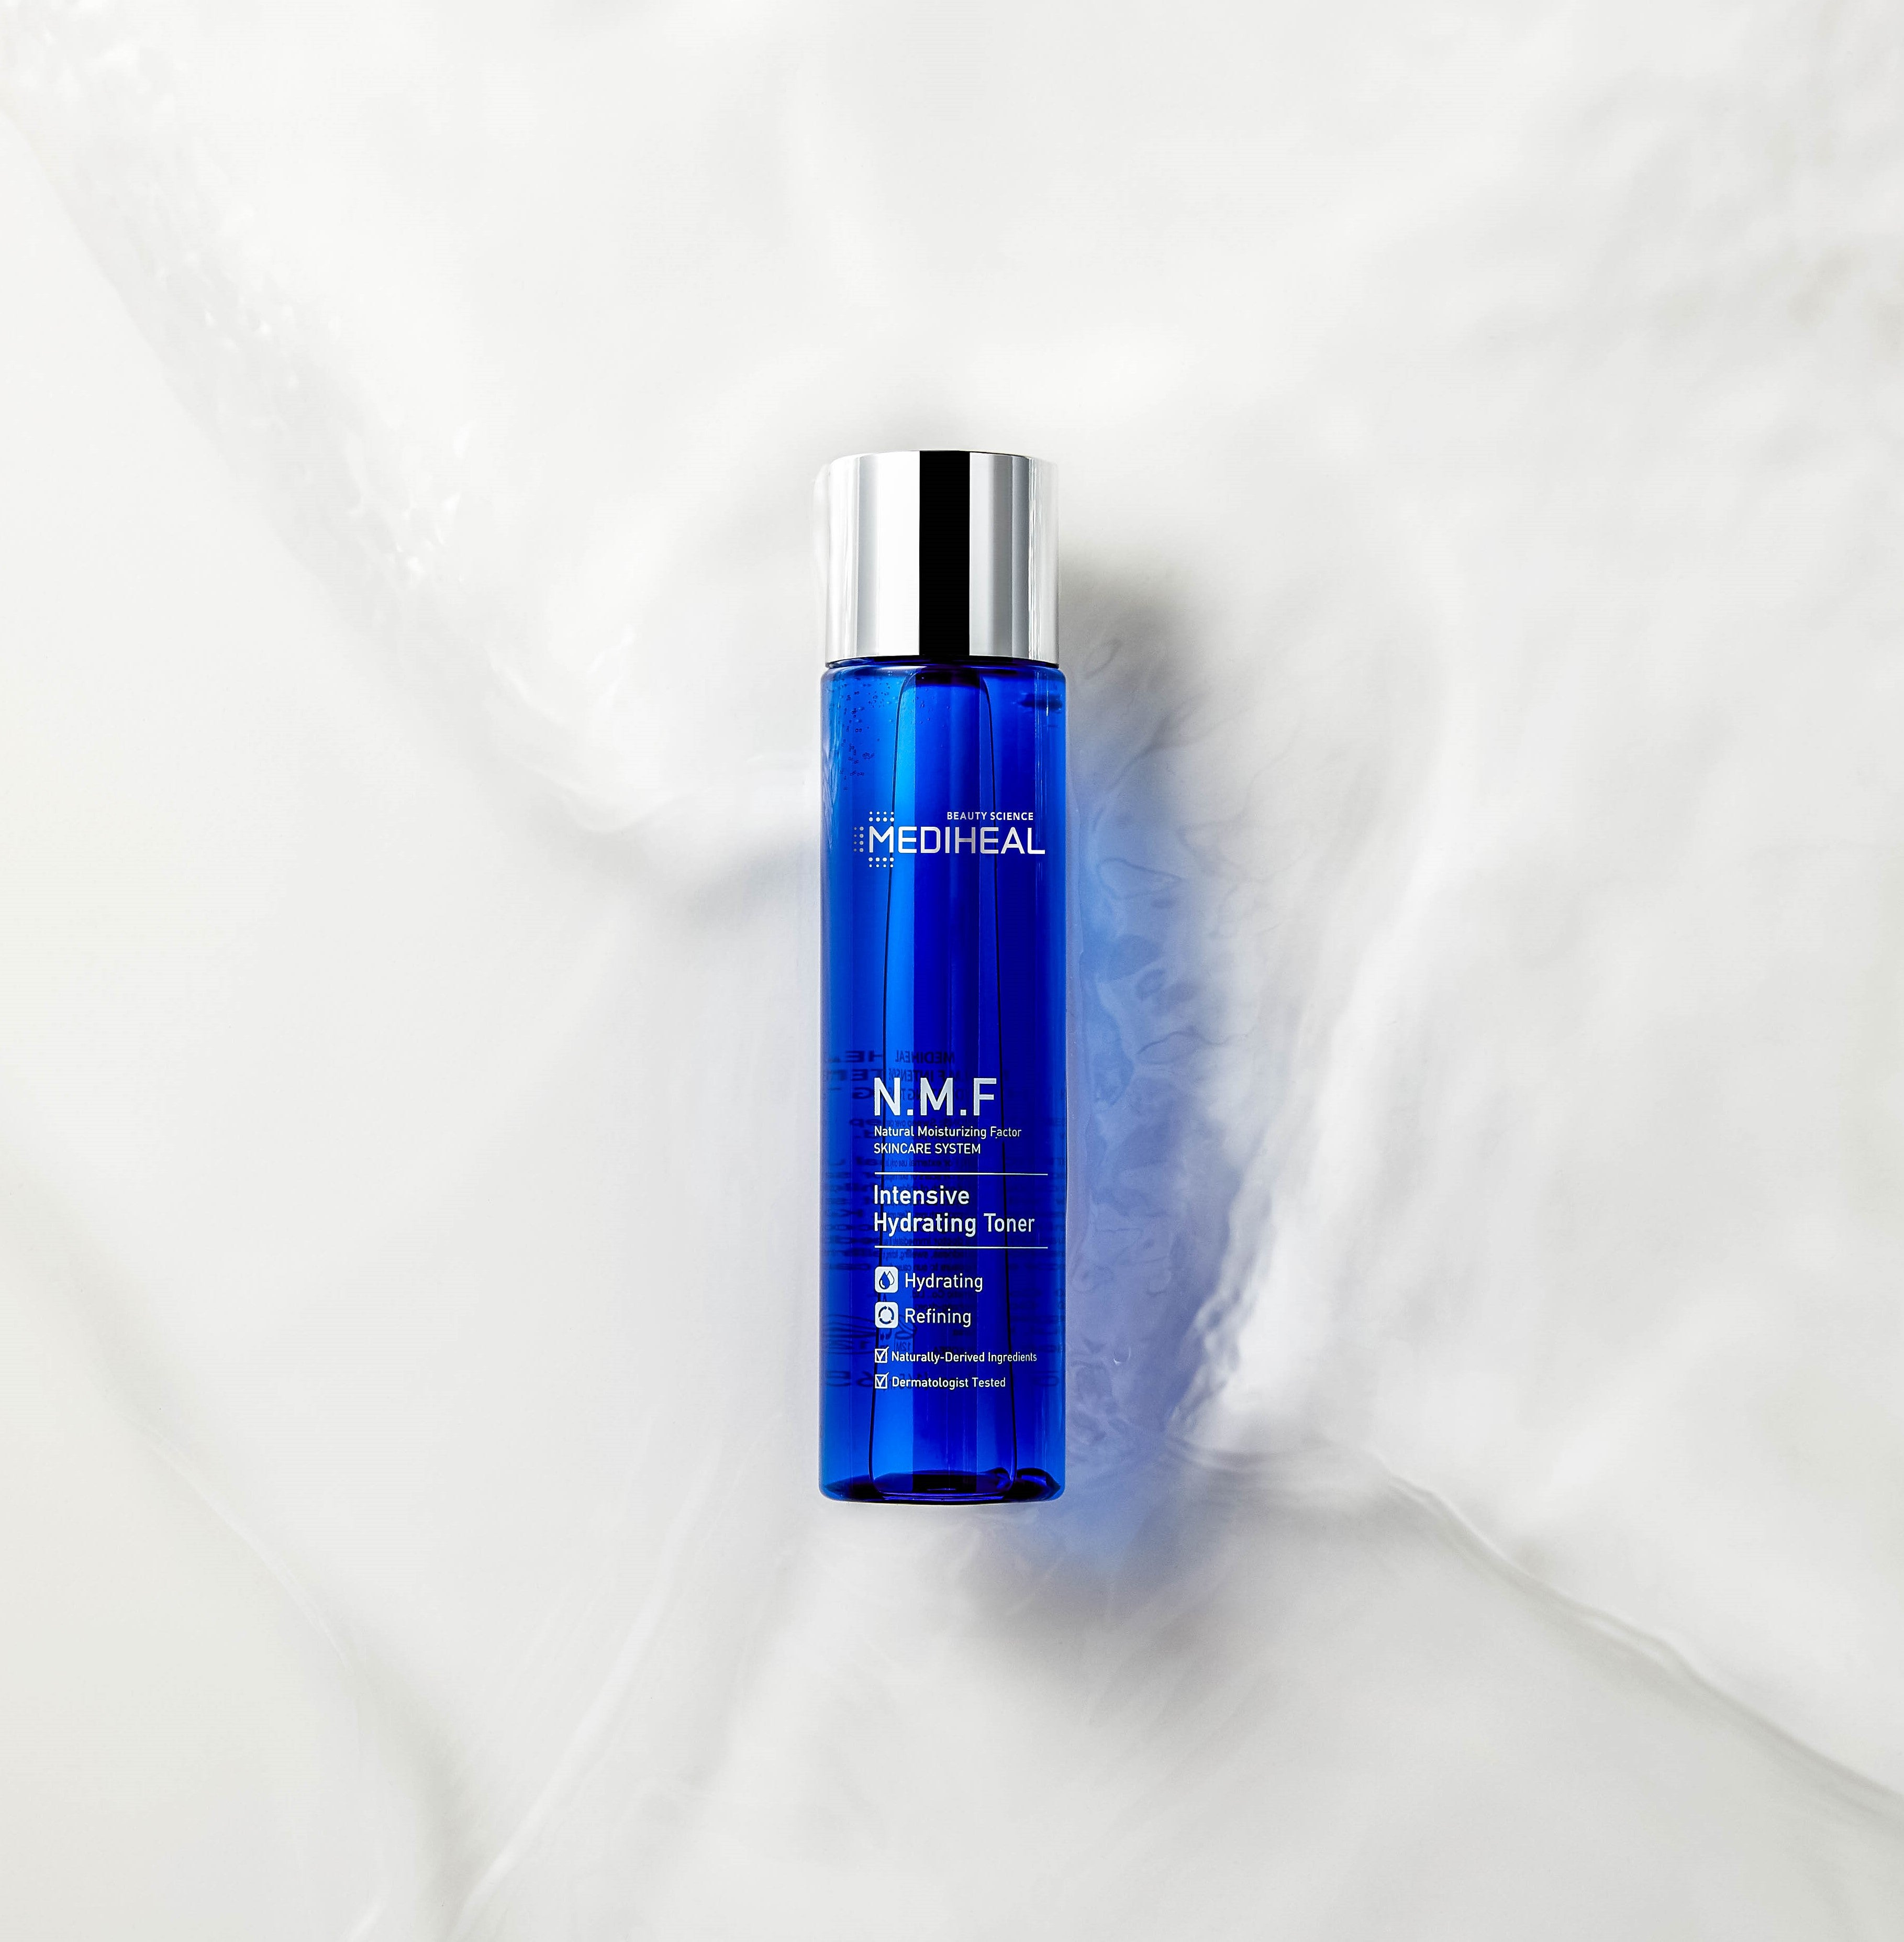 N.M.F Intensive Hydrating Toner - Plump Shop